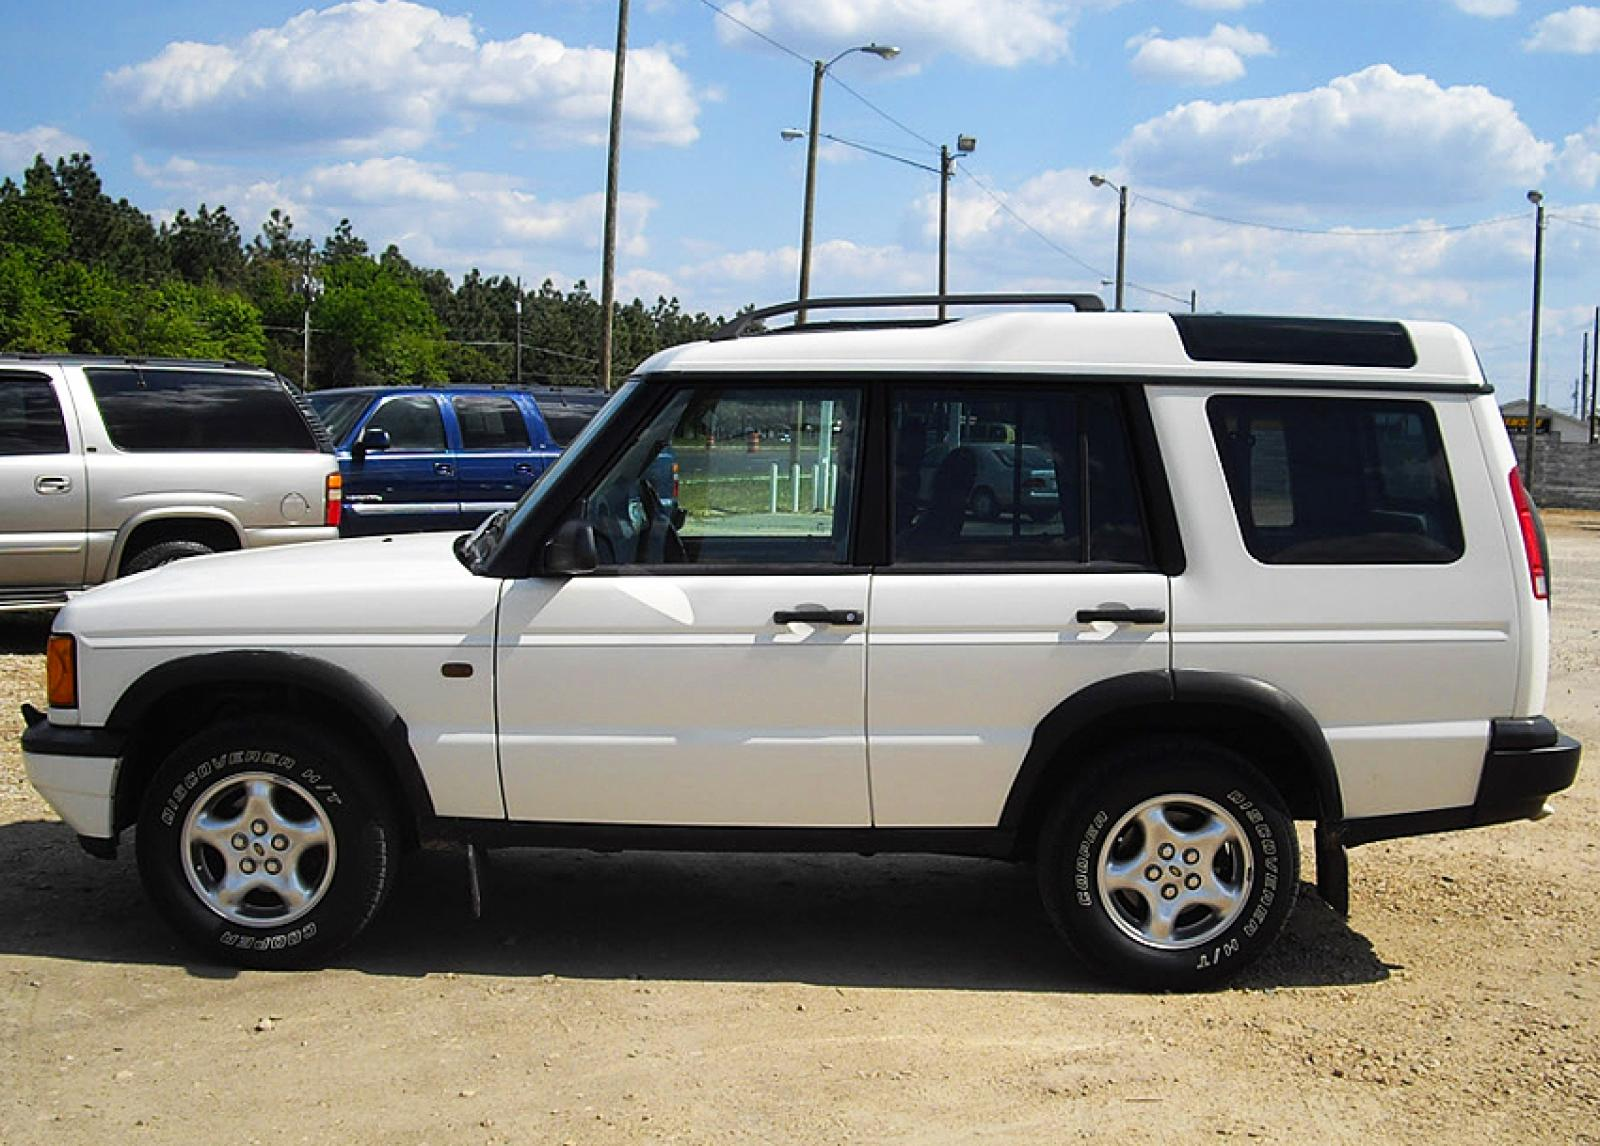 1999 land rover discovery 11 land rover discovery 11 800 1024 1280 1600 origin